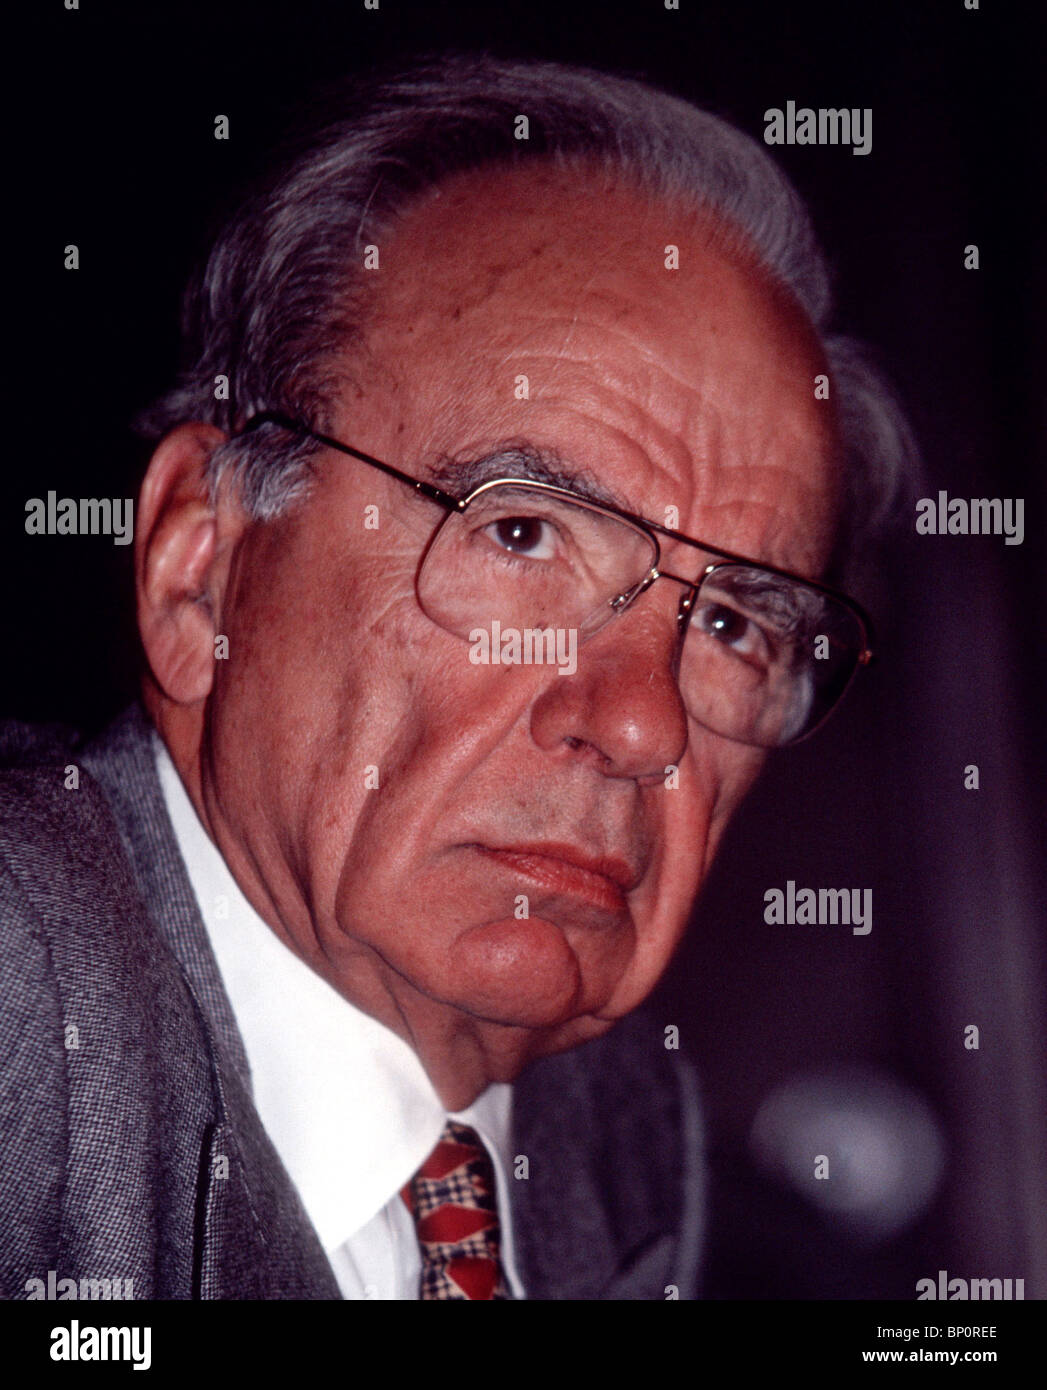 News Corporation's Rupert Murdoch seen here in a 1990 file photo. (© Frances M. Roberts) - Stock Image